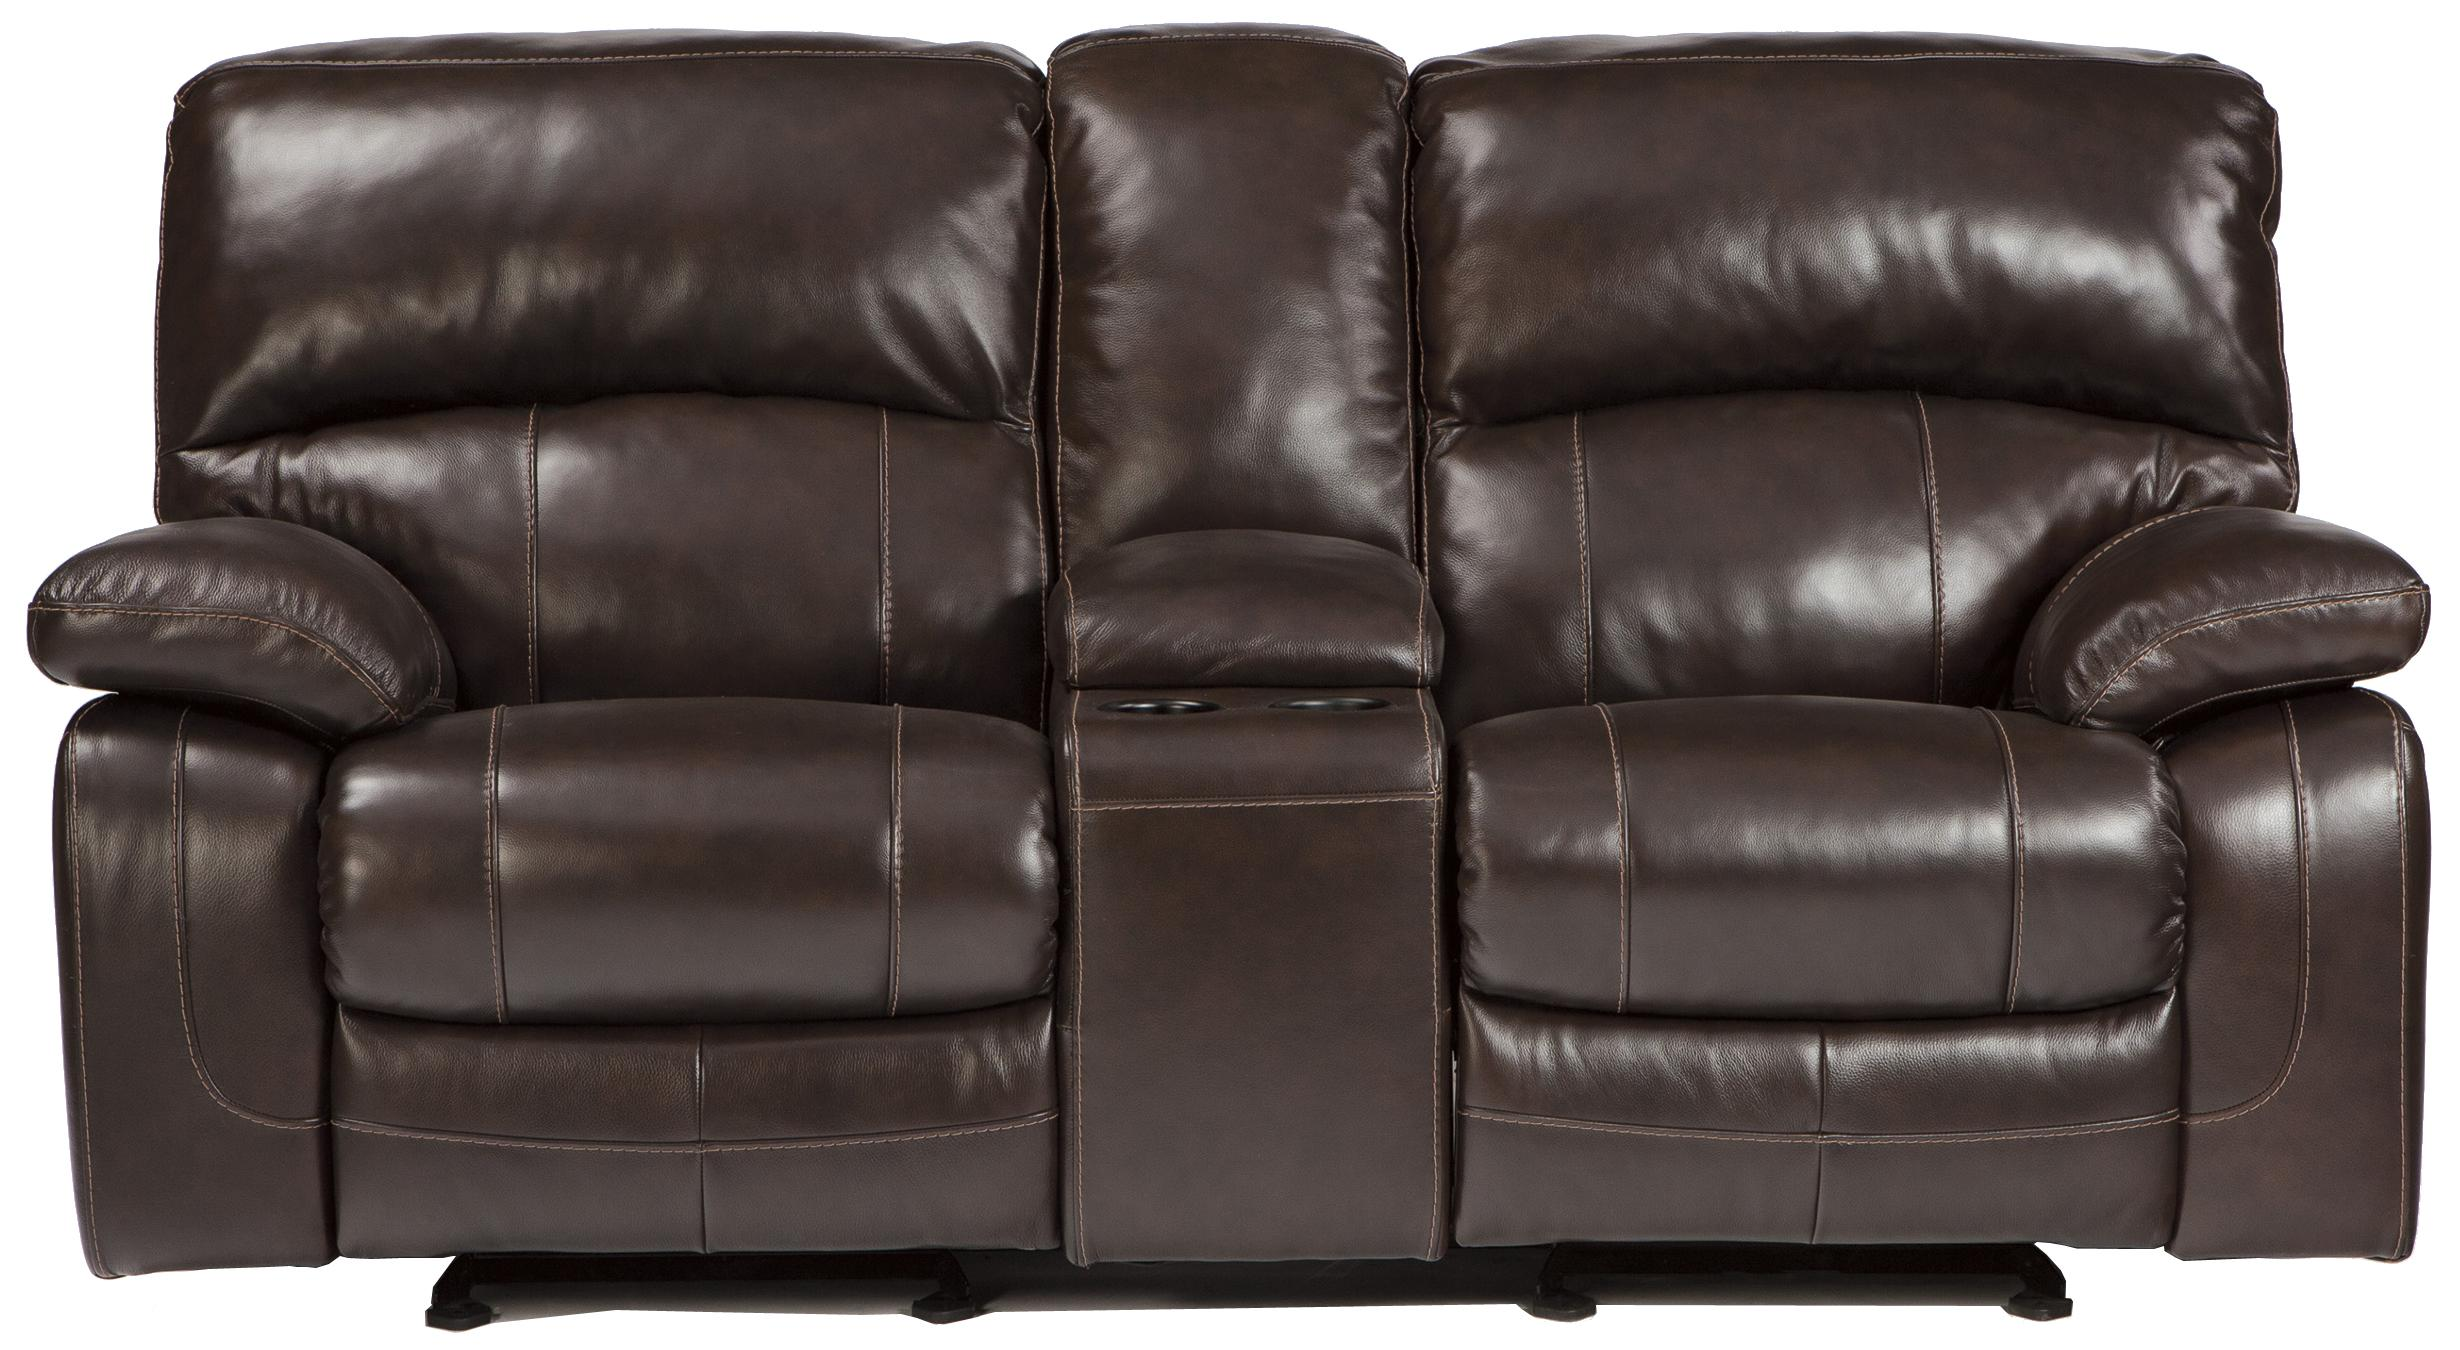 Signature Design By Ashley Damacio Dark Brown Leather Match Glider Recliner Loveseat W